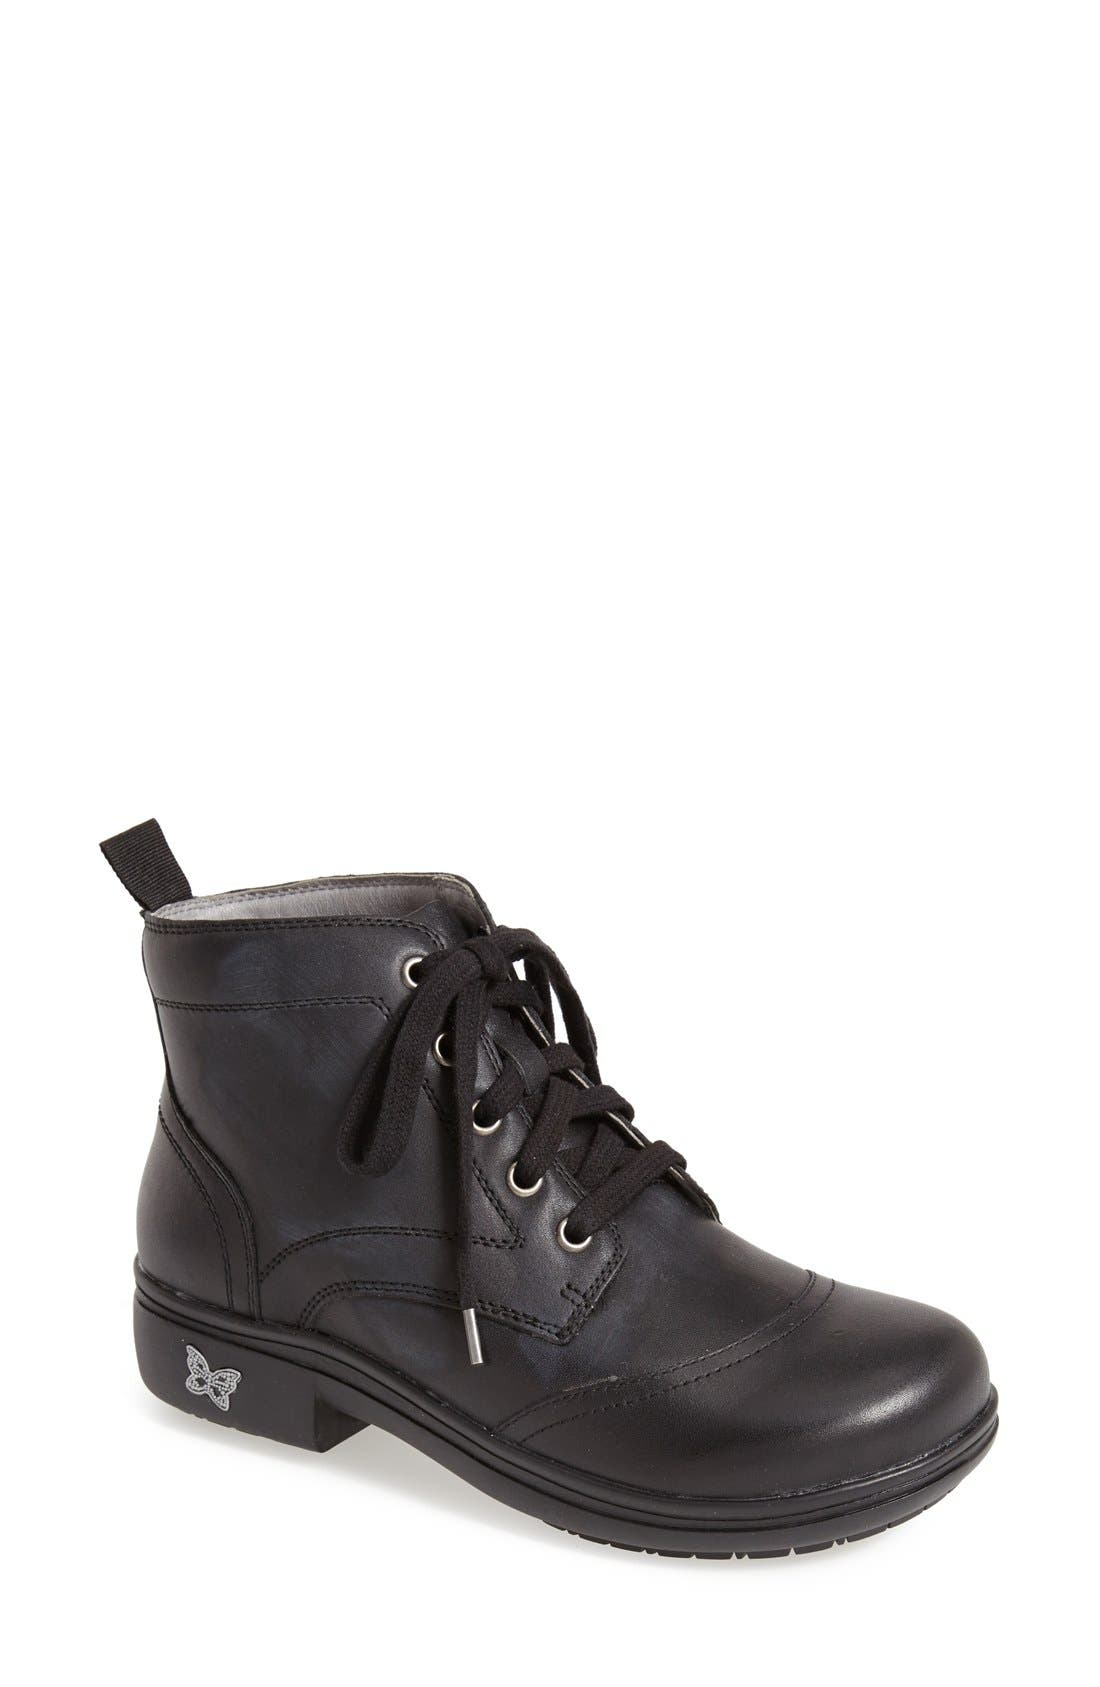 'Kylie' Leather Boot,                             Main thumbnail 1, color,                             001